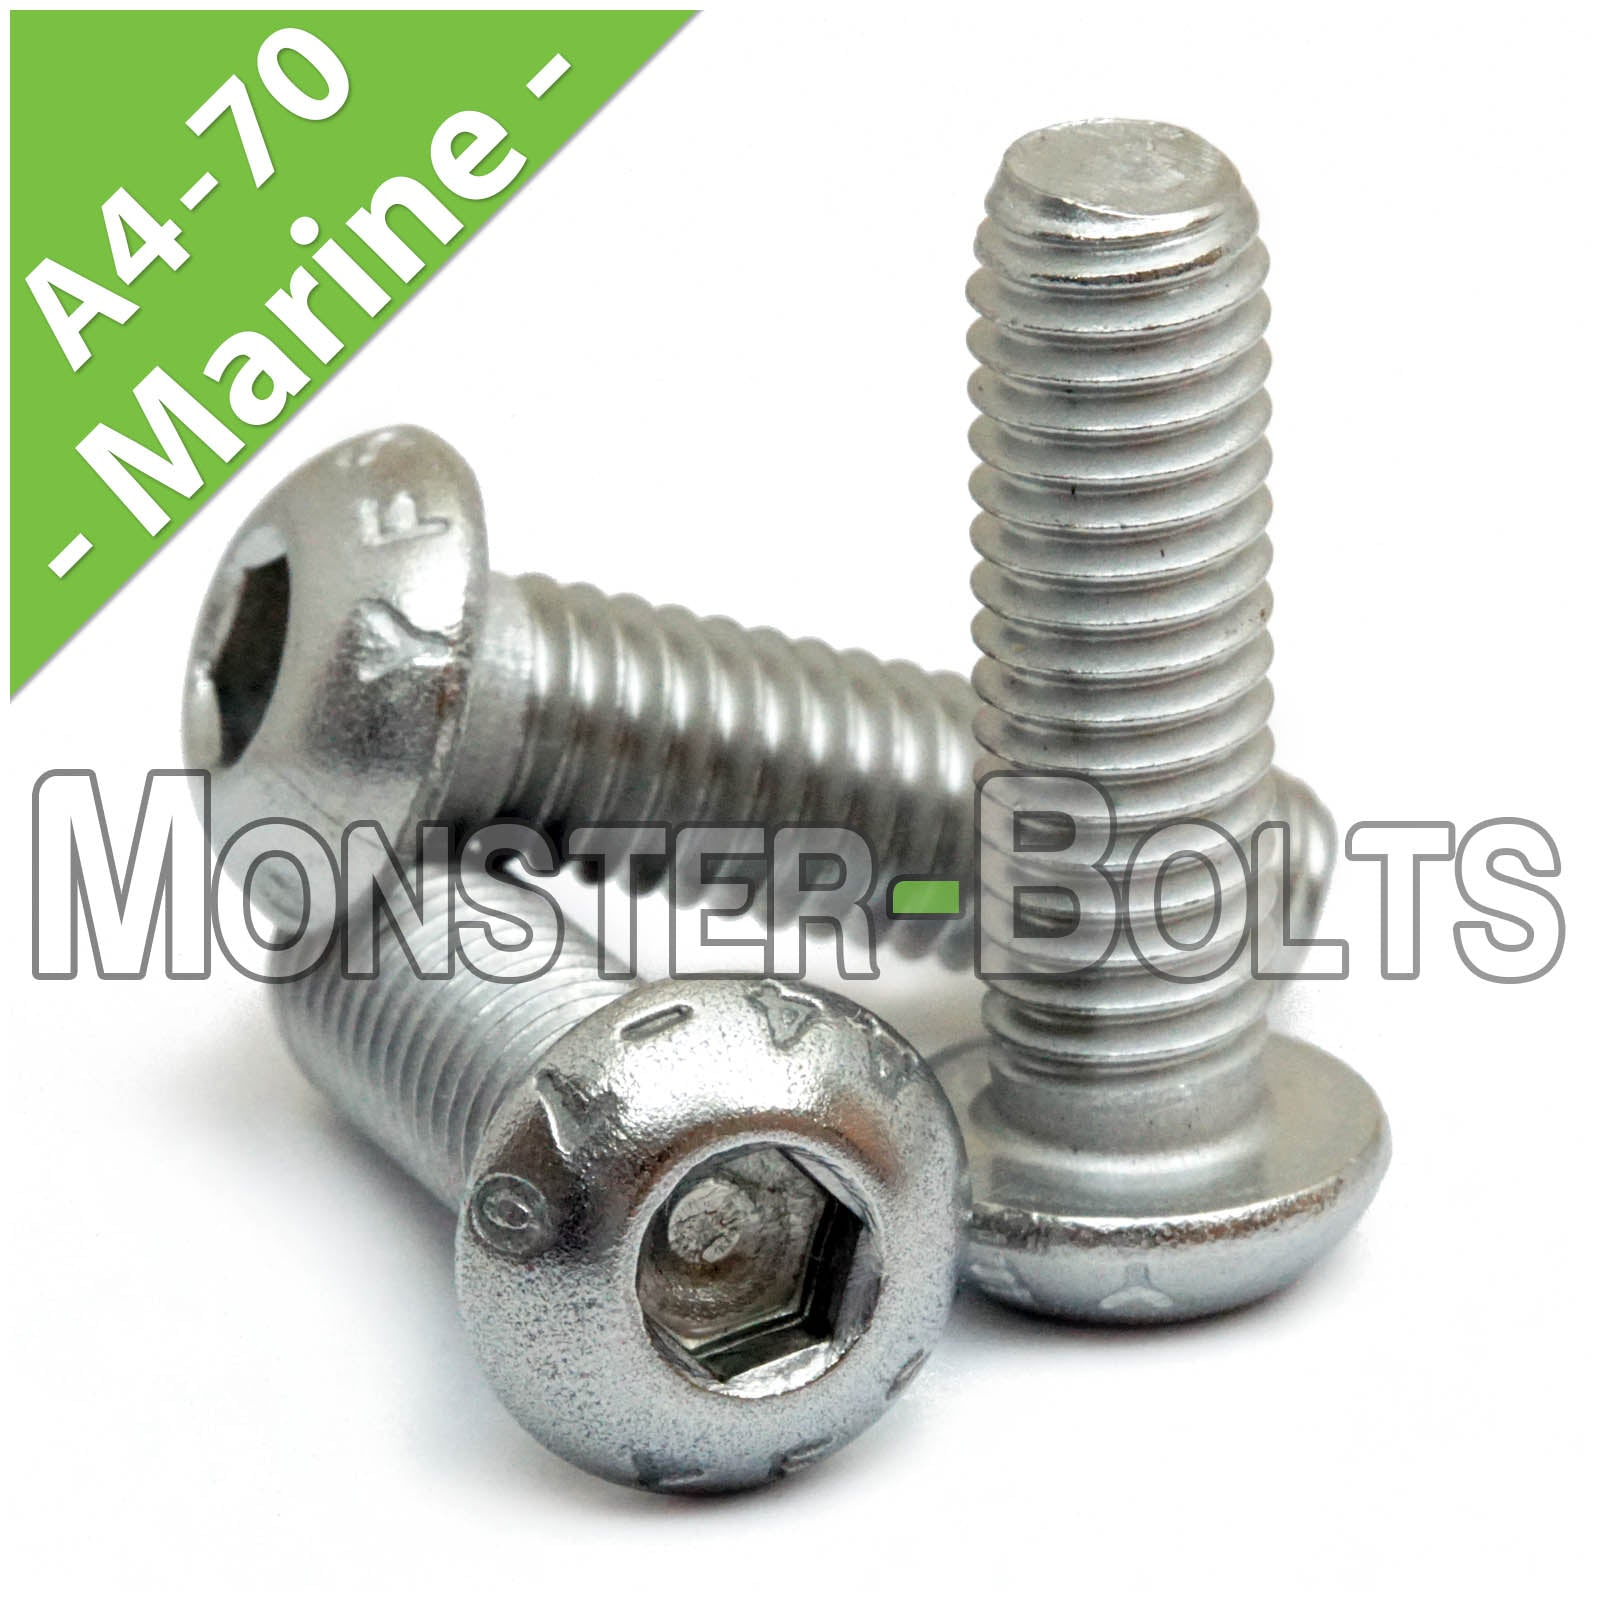 x 50mm Marine Stainless Steel SS 316 A4 70 Bolt Qty 2 Hex Set Screw M10 10mm